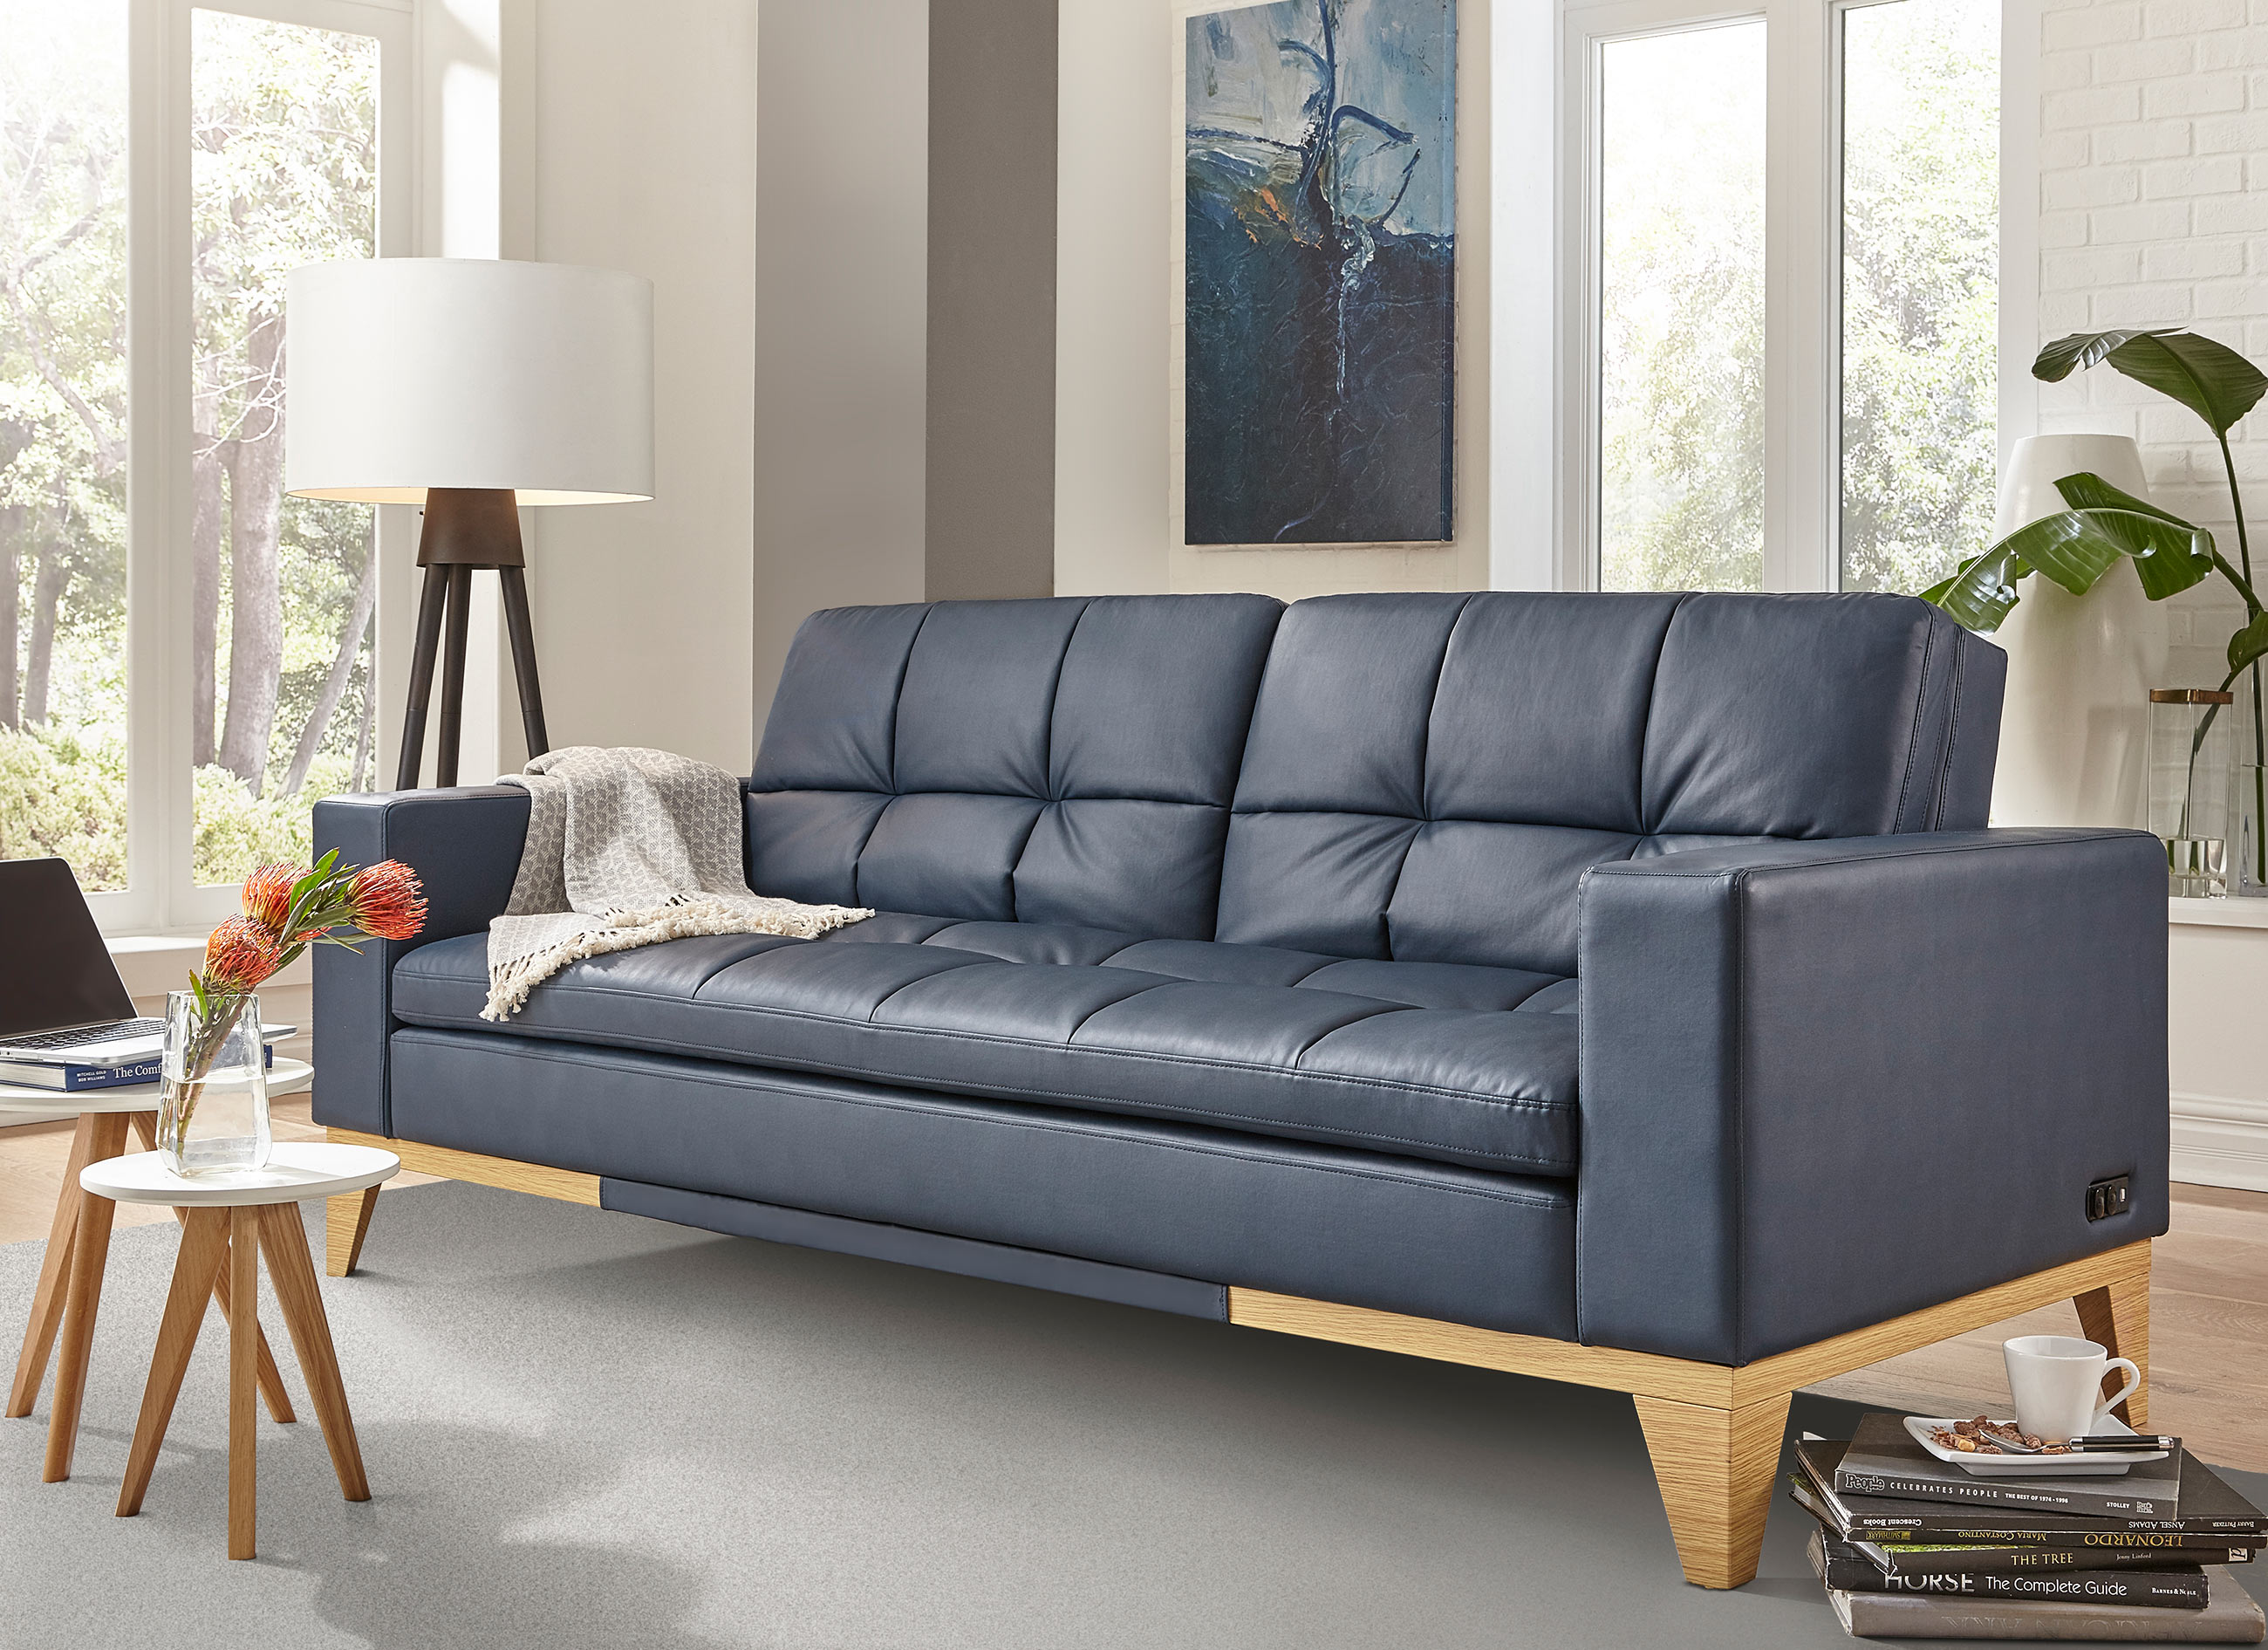 serta casual angora sectional couch furniture lfchs chaise products by hughes with rfs number upholstery sofa contemporary item